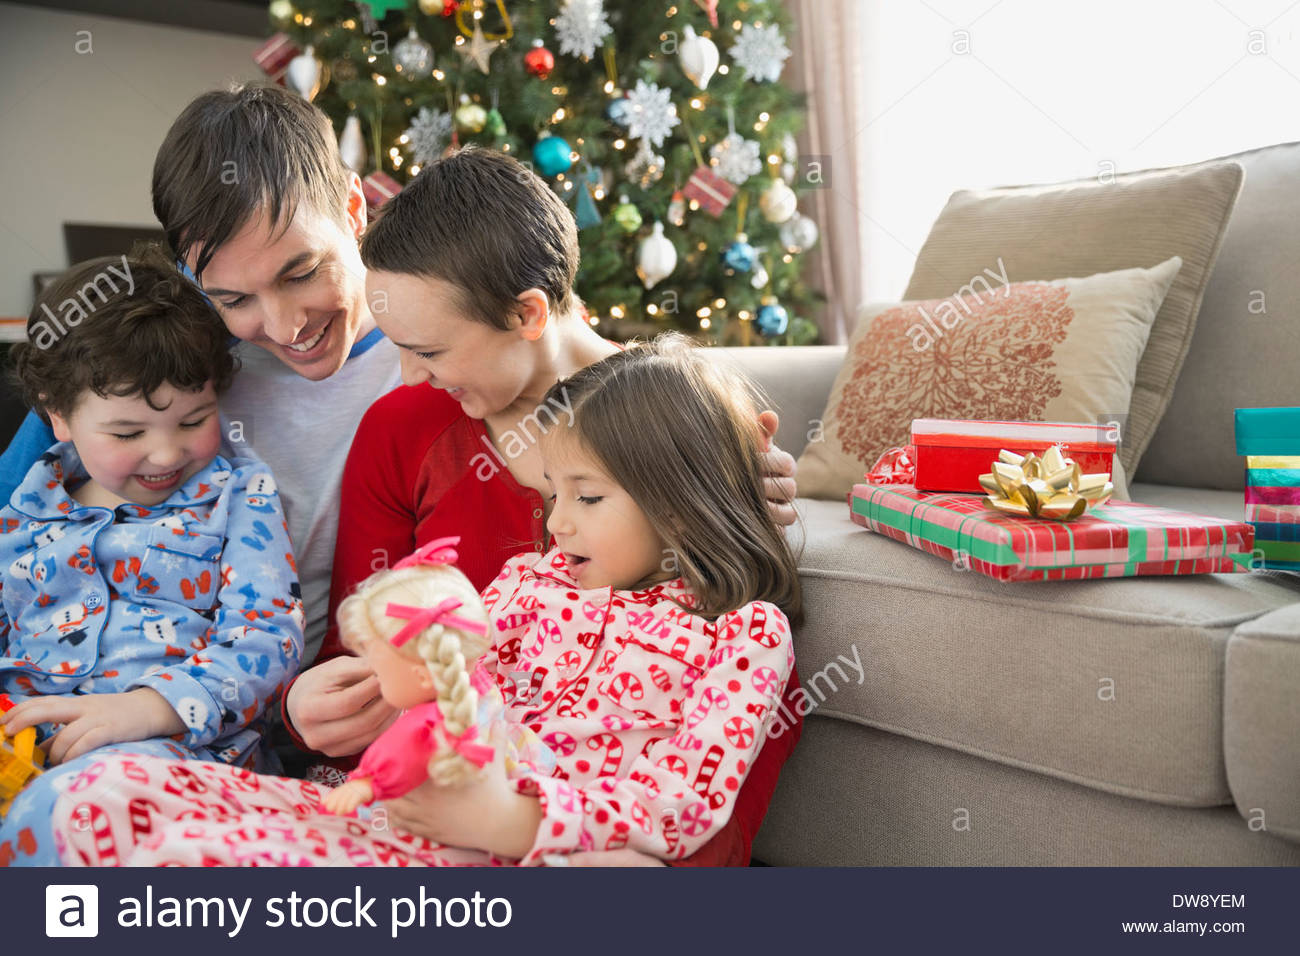 Family spending leisure time at home during Christmas - Stock Image